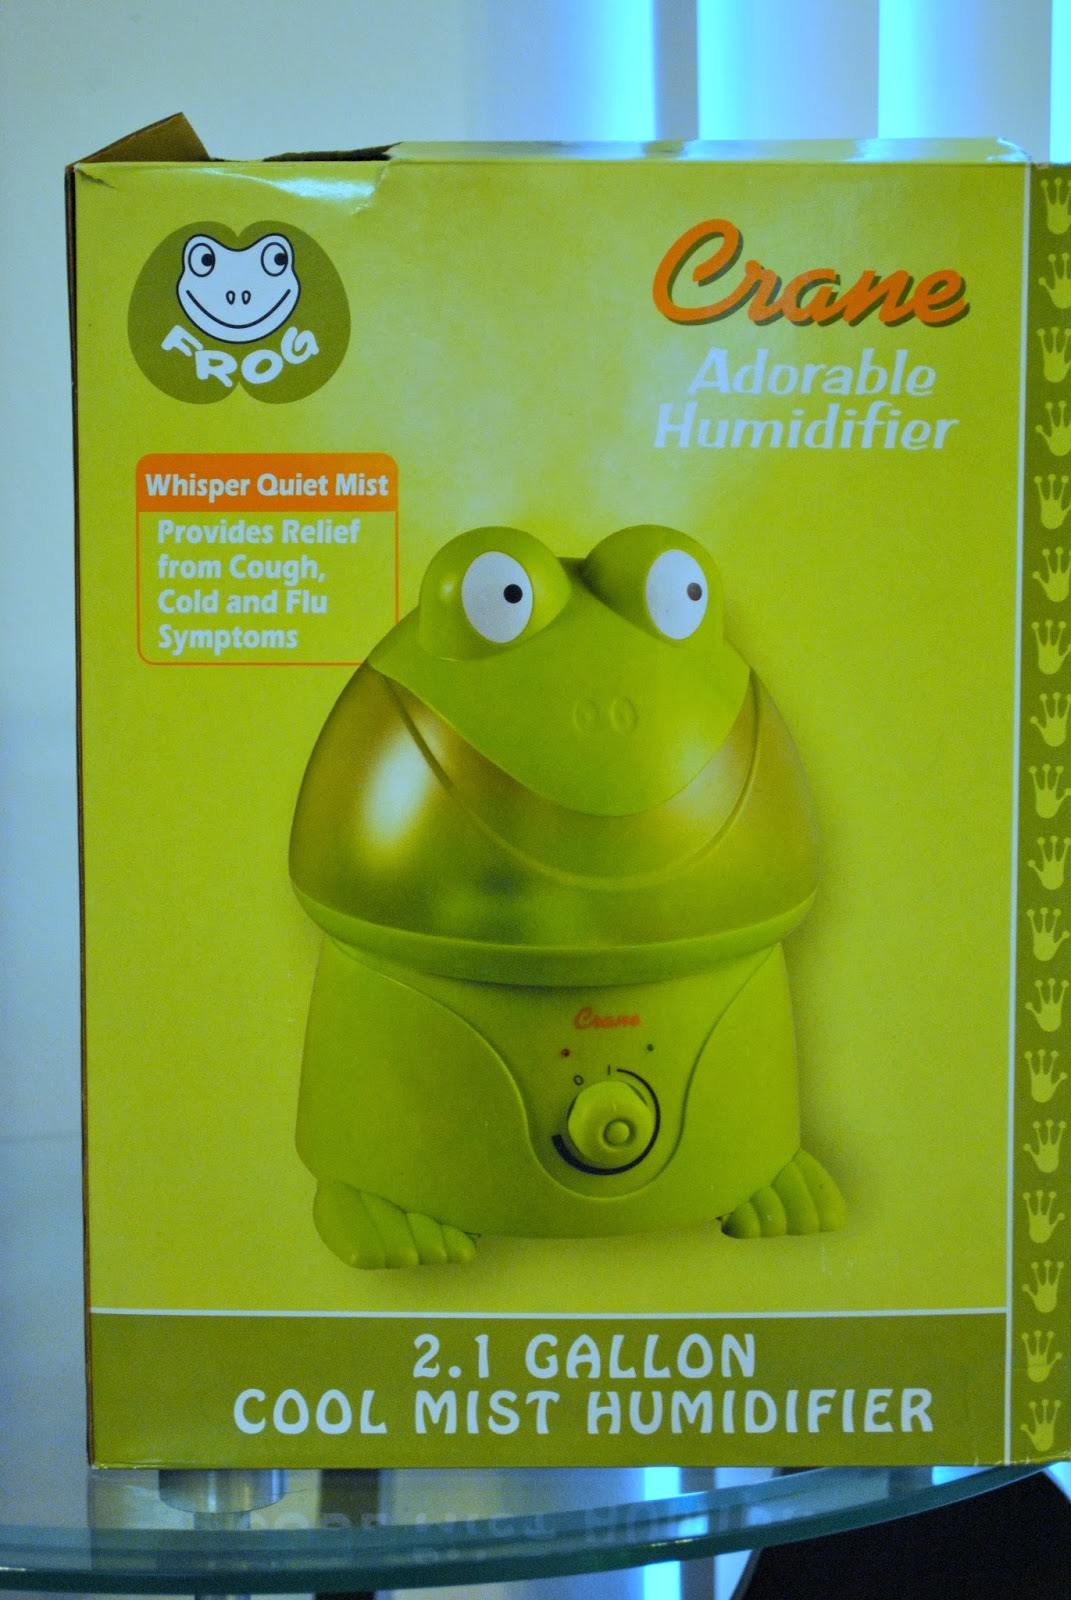 Diary of a Fit Mommy: Crane Ultrasonic Humidifier Product Review #BC6E09